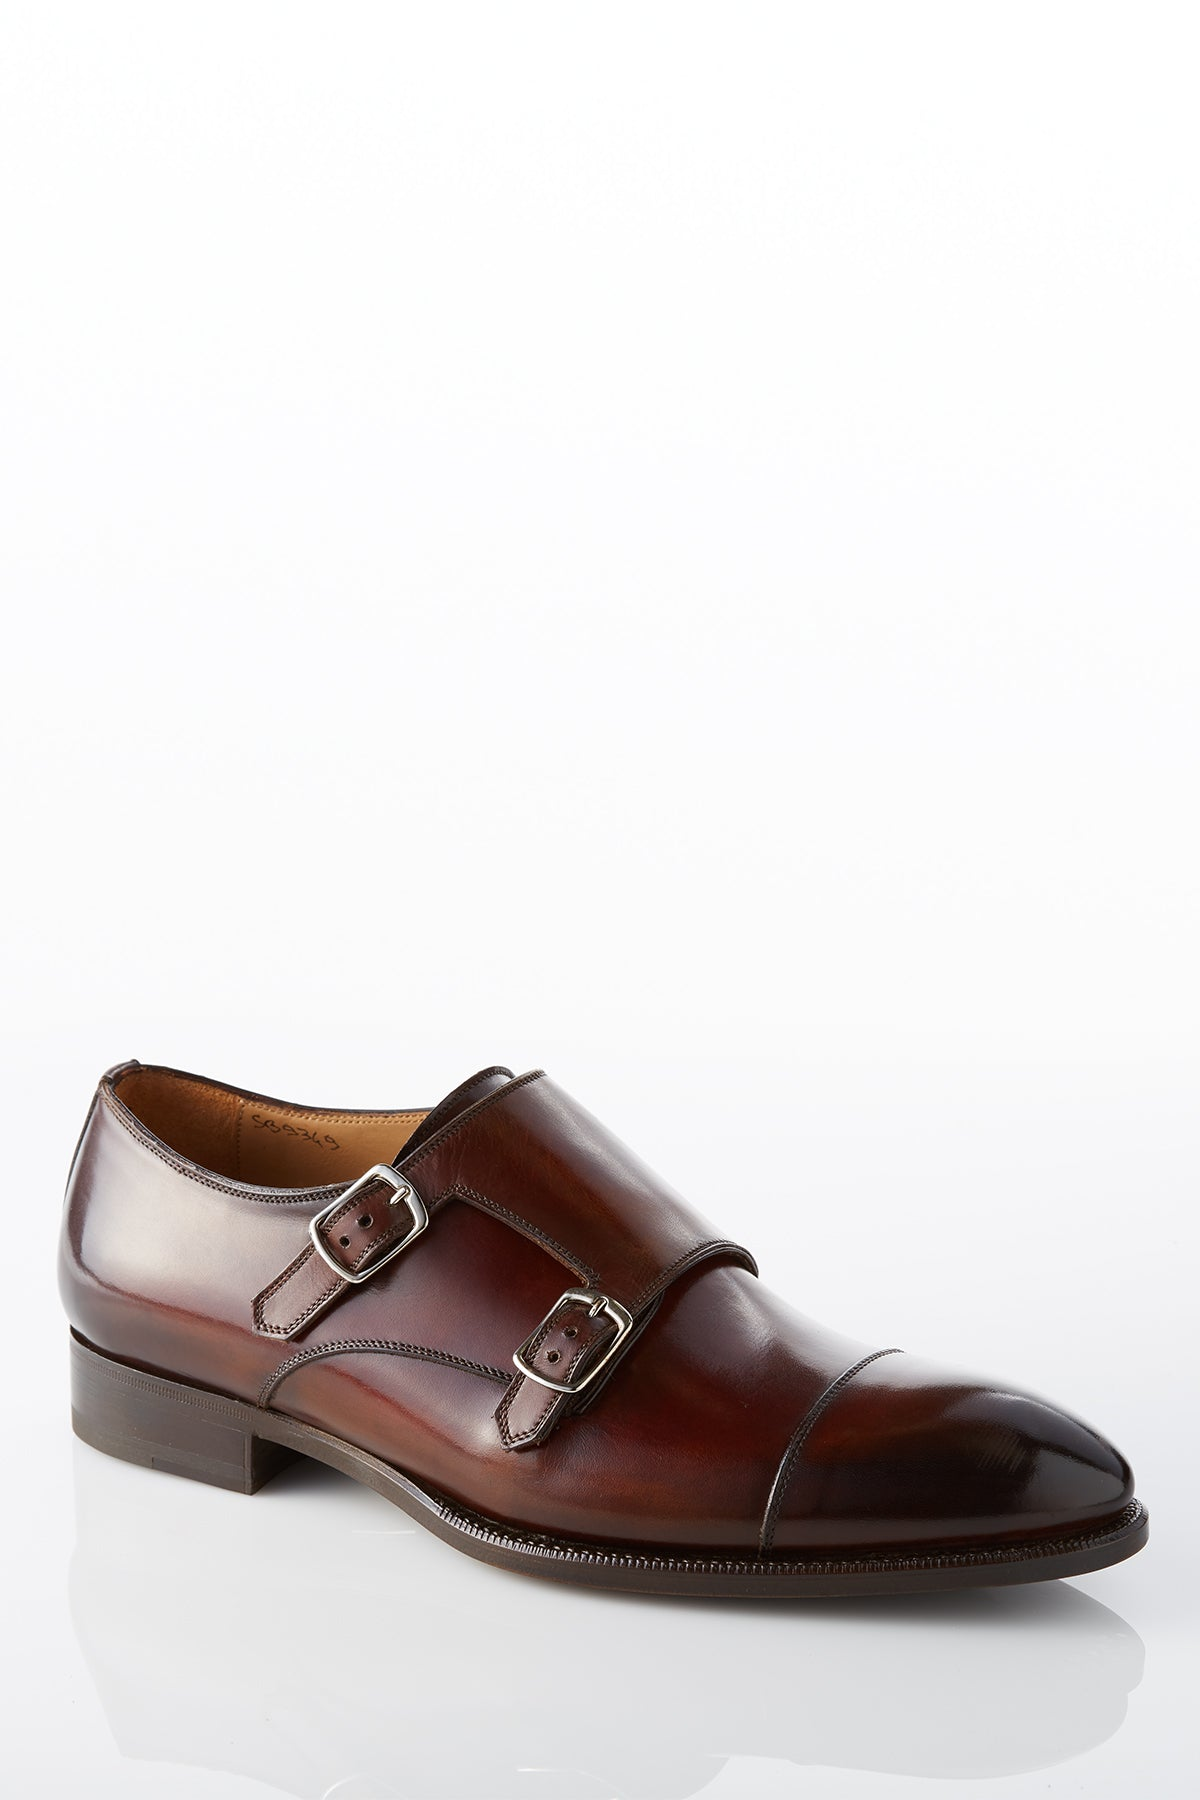 David August Leather Cap Toe Double Monk-strap Shoes in Whiskey Brown Di Bianco